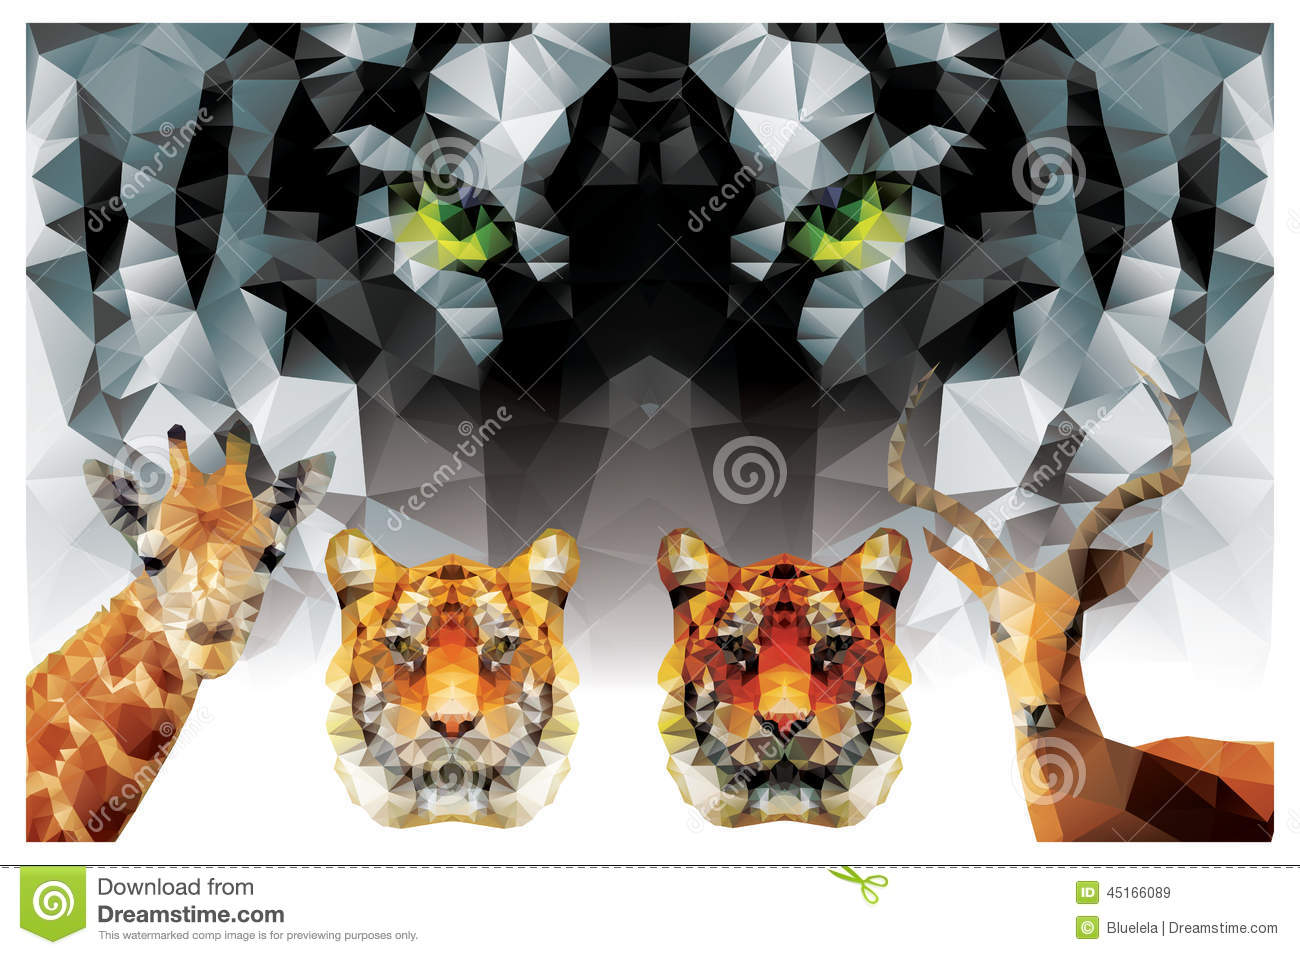 Tiger head triangular icon geometric trendy stock vector image - Collection Of Geometric Polygon Animals Tiger Giraffe Royalty Free Stock Images